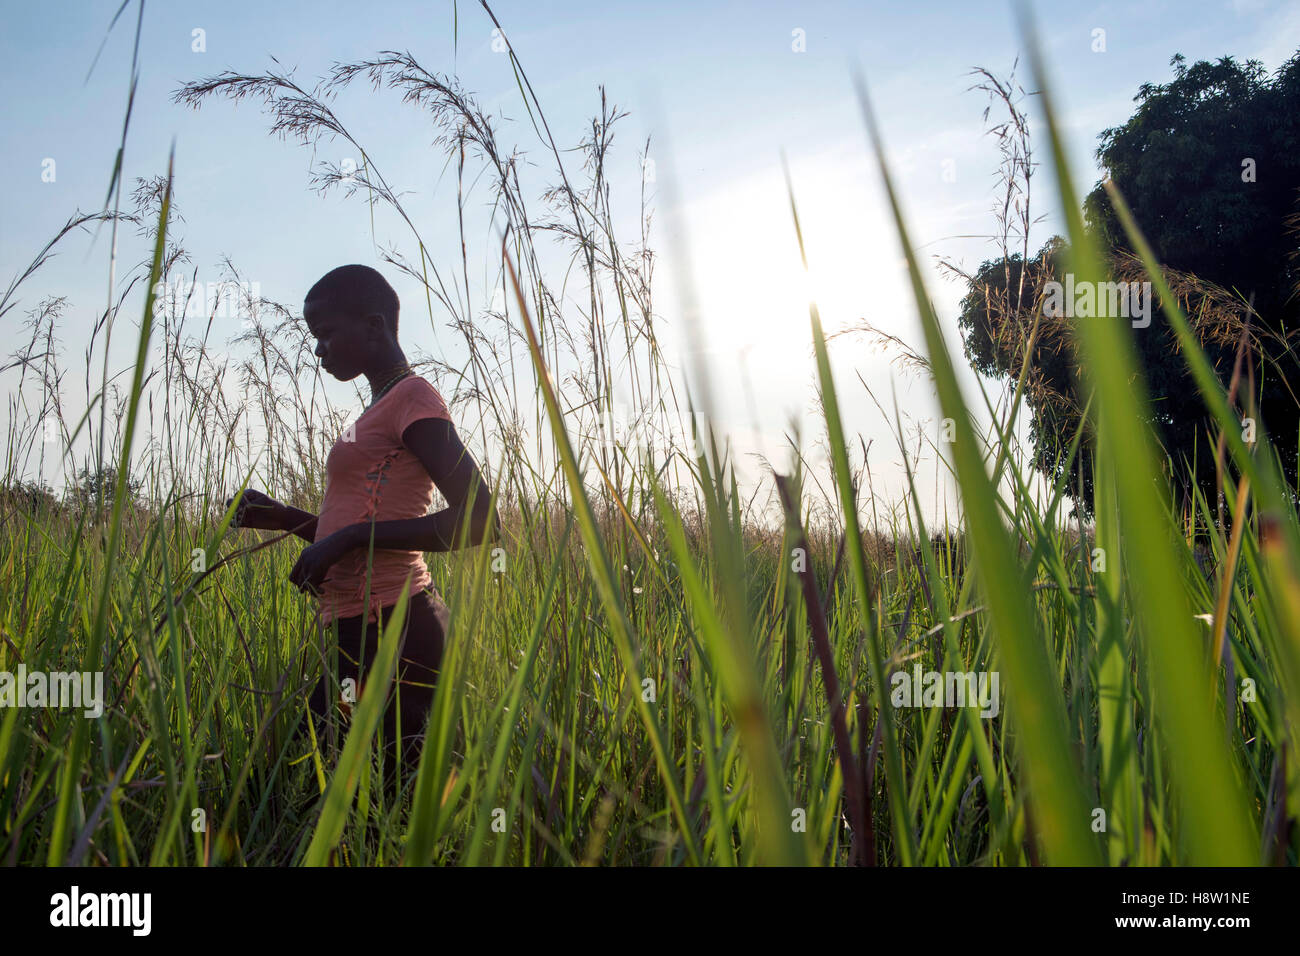 South Sudan refugee walking a field in North Uganda, near the town of Adjumani. Nov, 2016 - Stock Image